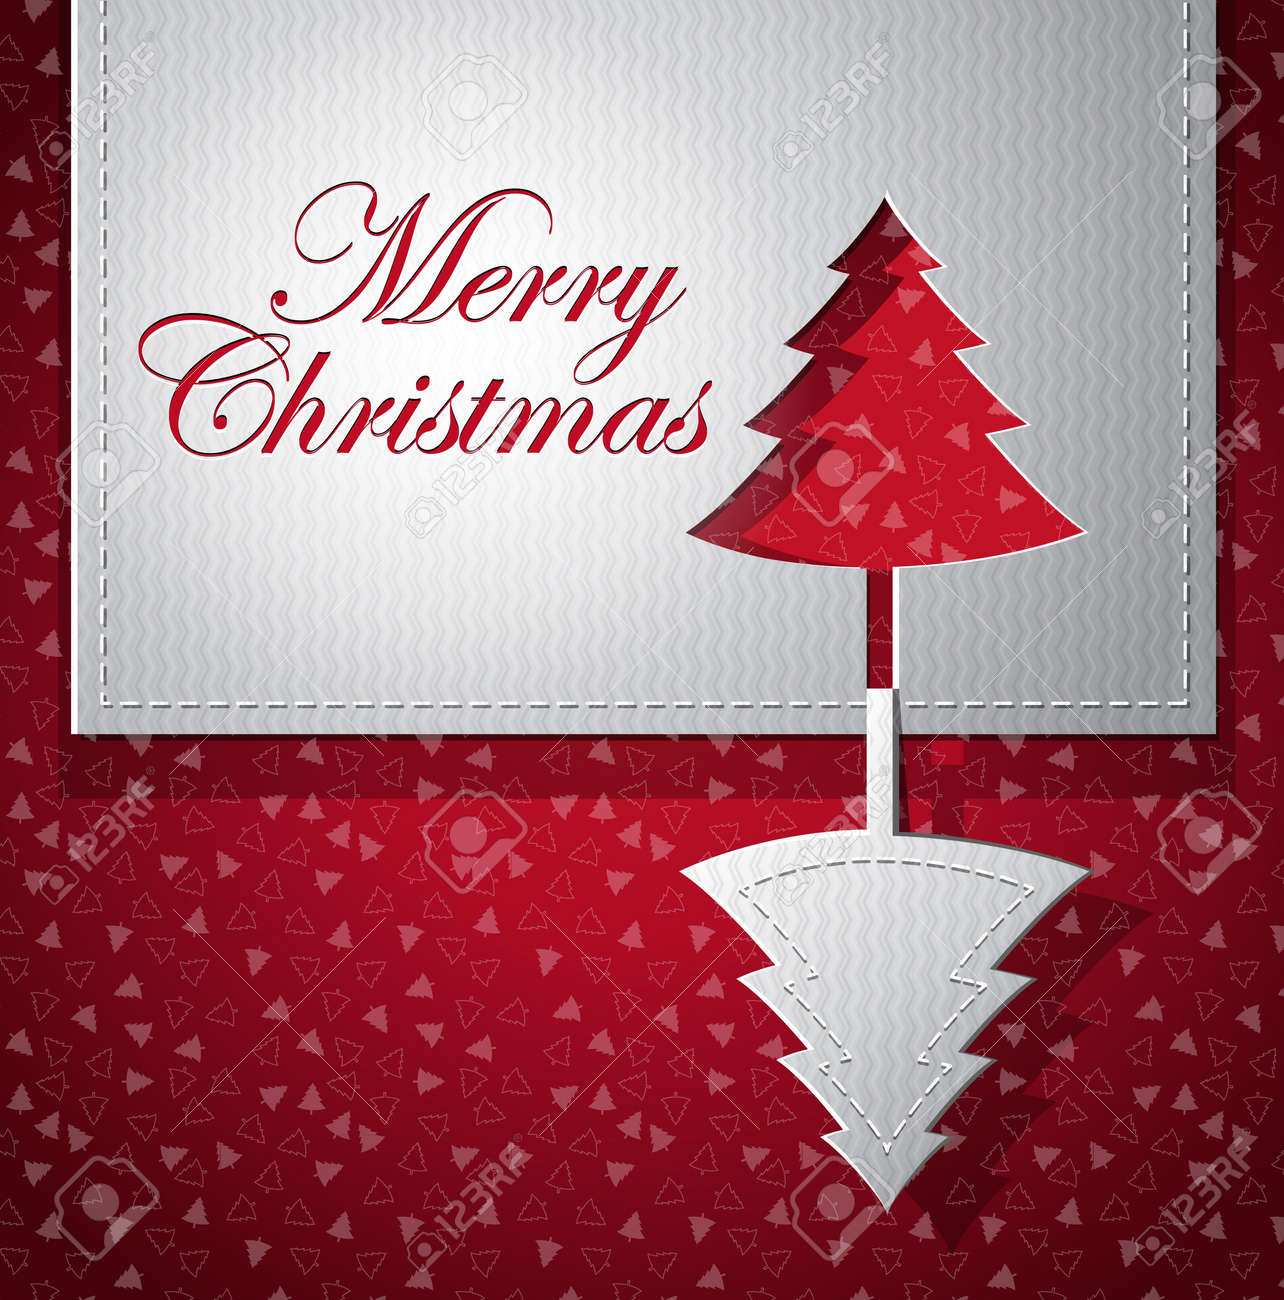 Christmas trendy greeting card - silver and red - paper cut vector illustration Stock Vector - 11081853